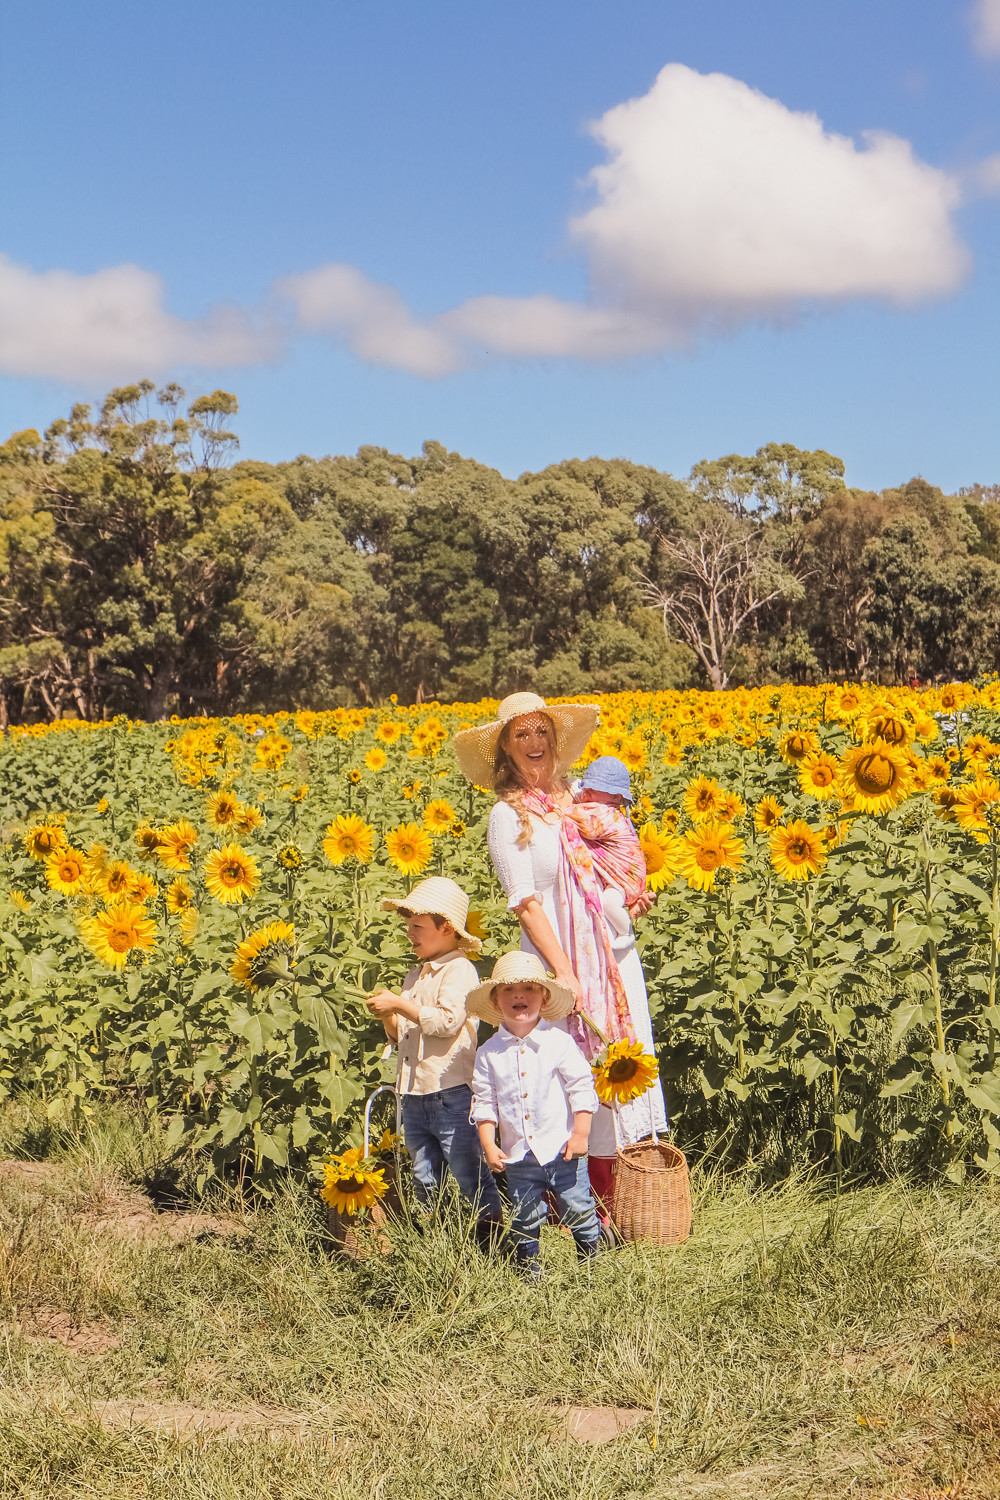 Goldfields Girl with her kids in the sunflower field near Ballarat holding giant sunflowers and wearing straw hats